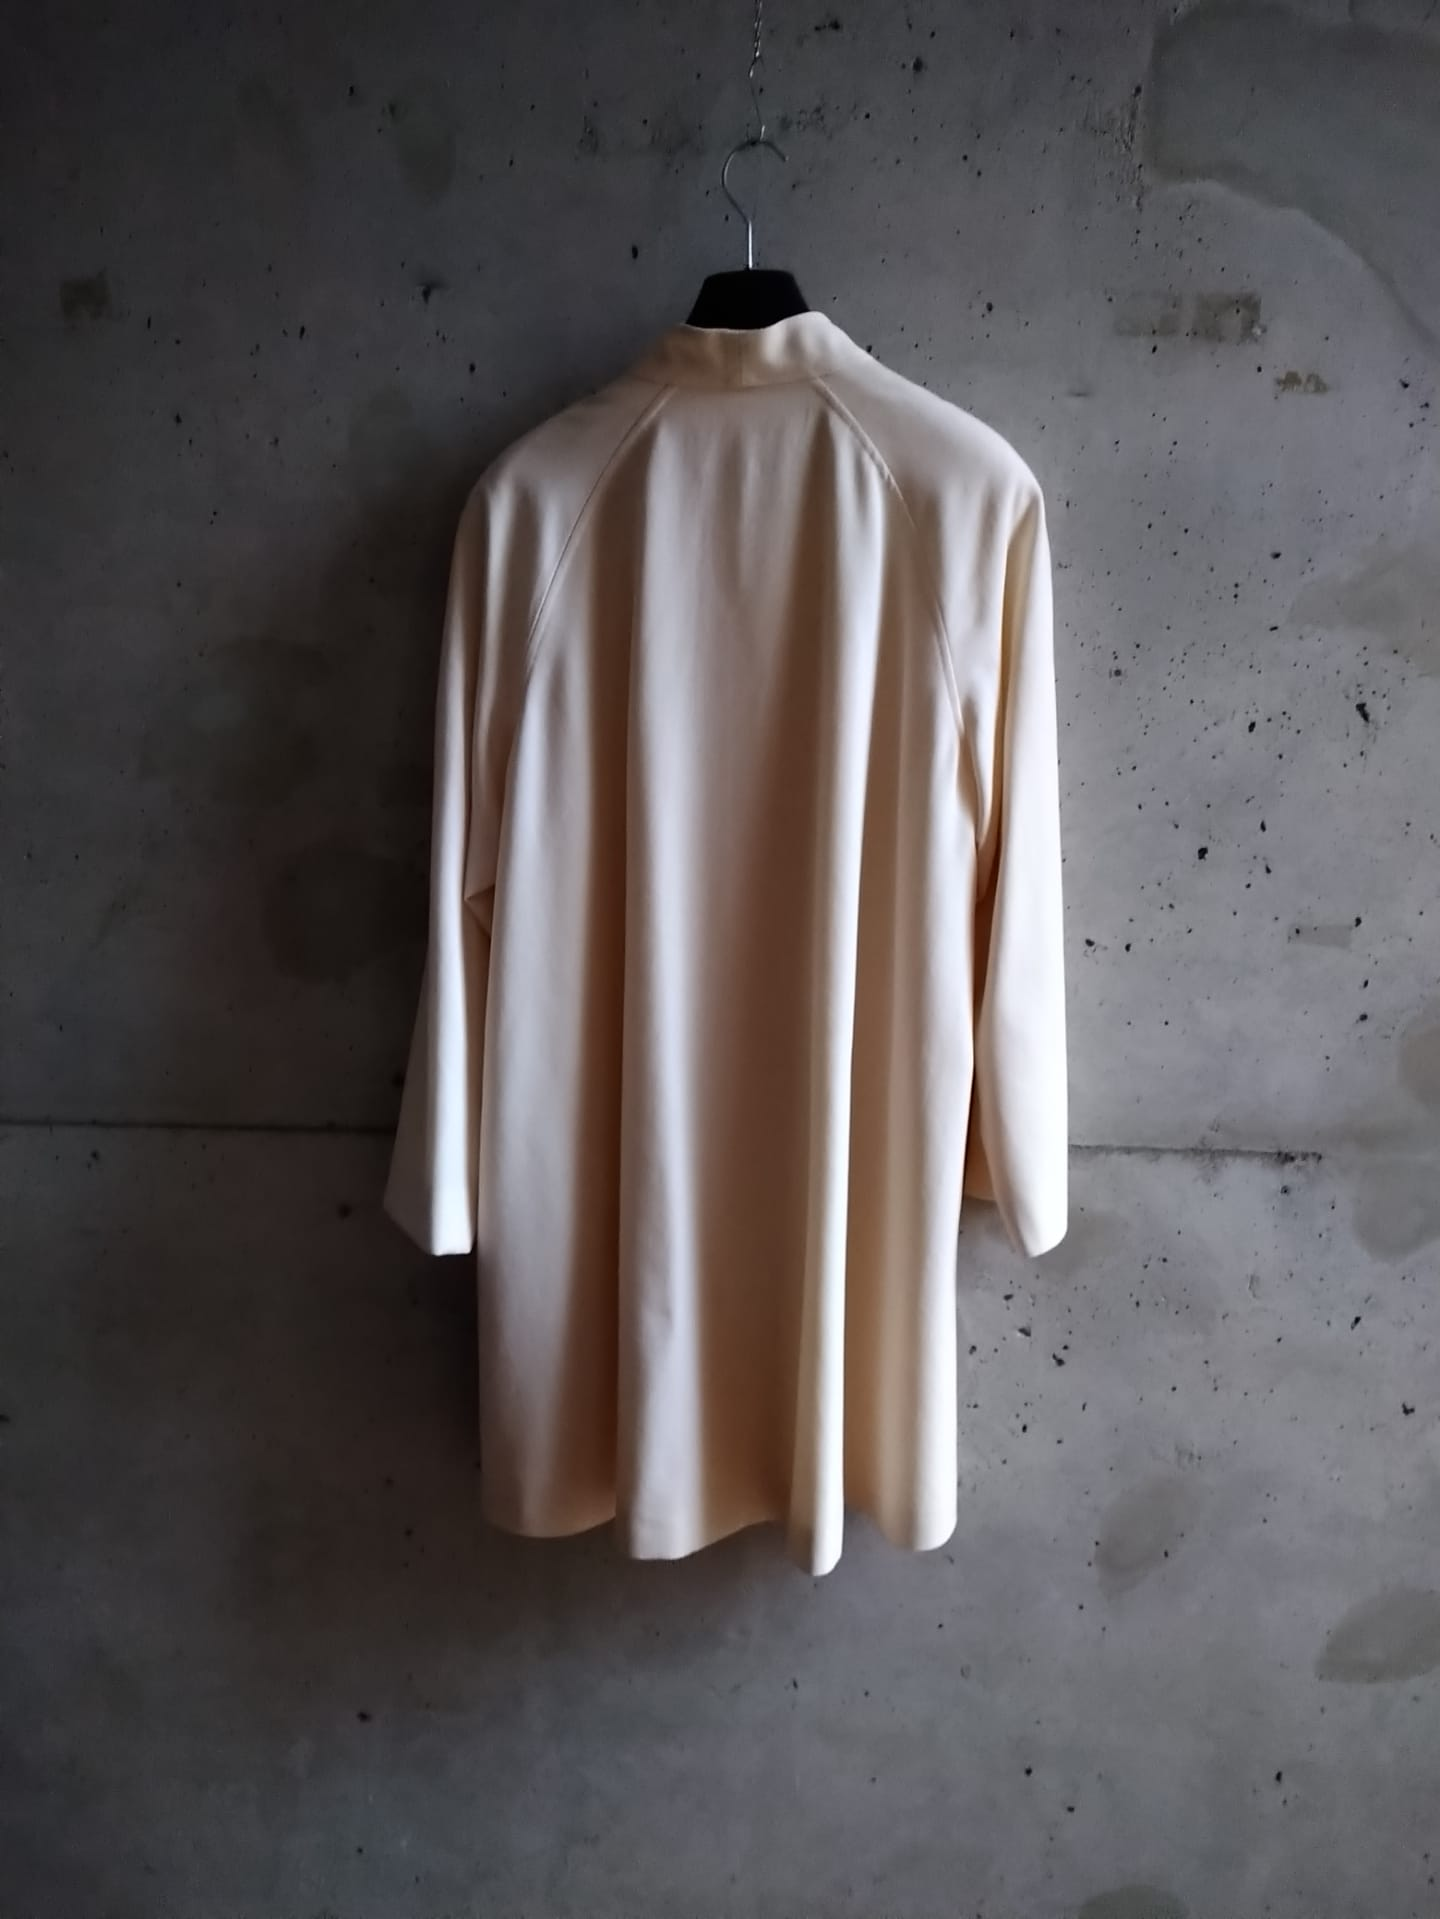 Ungaro cream wool shouldered coat